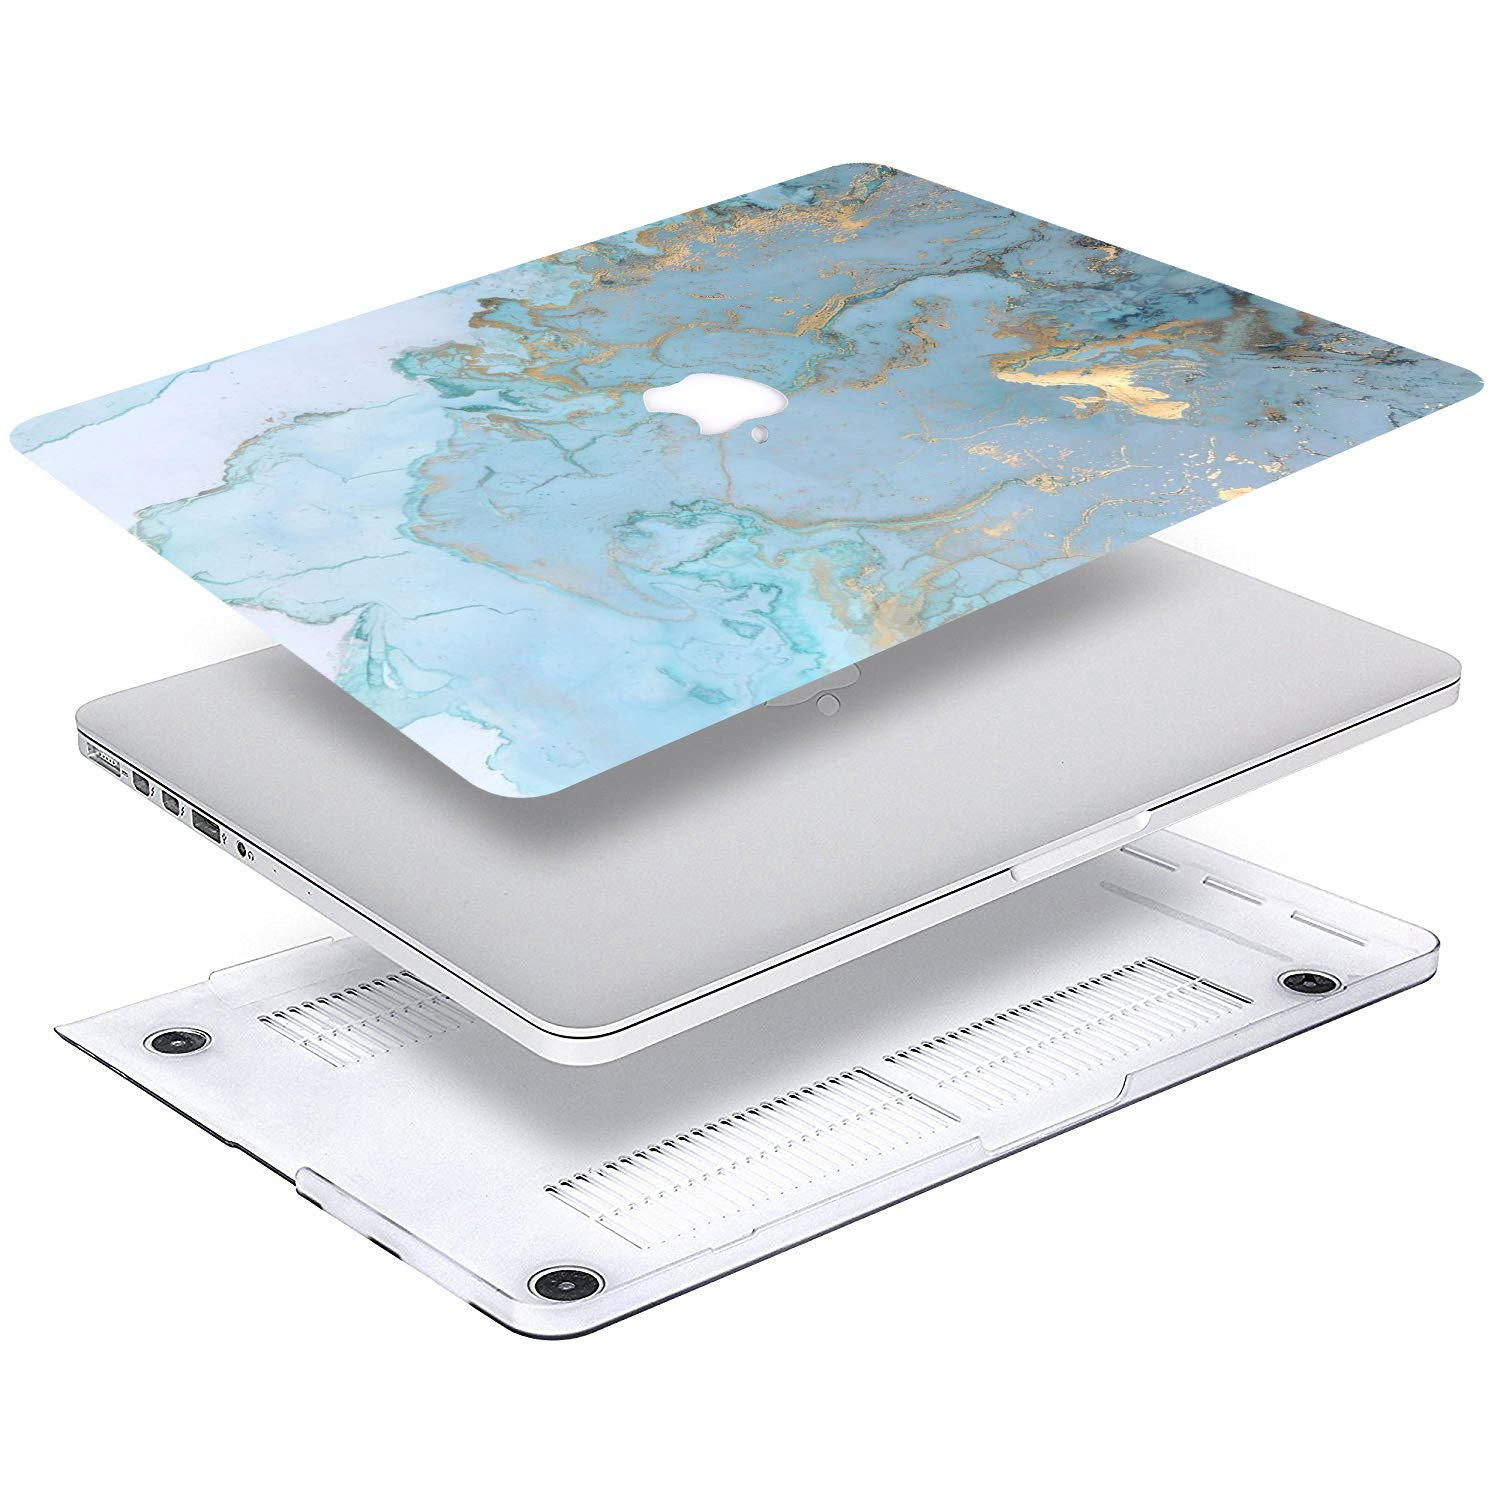 NO CD-ROM,Retina A1502//A1425 Plastic Case Keyboard Cover /& Screen Protector /& Keyboard Cleani MacBook Pro Case Cake Icon Cake Sign On MacBook Pro 13